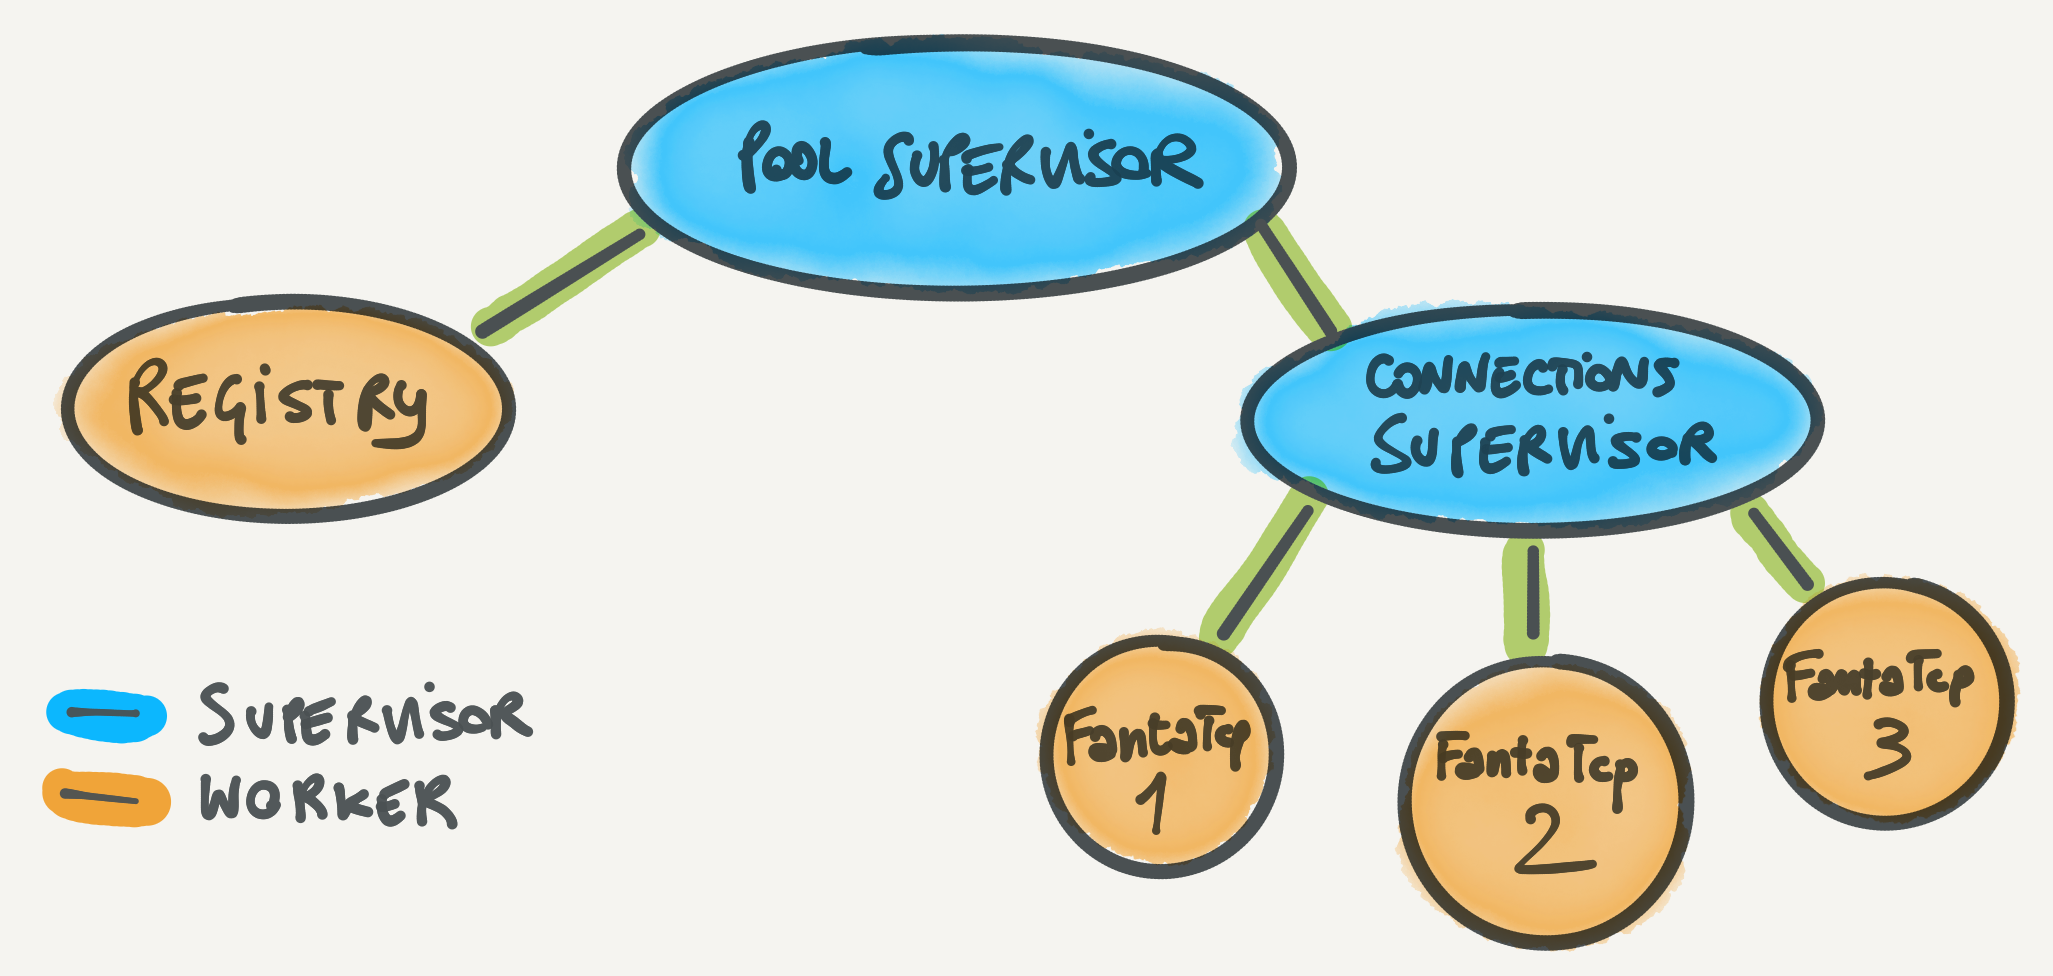 Sketch of the pool supervision tree